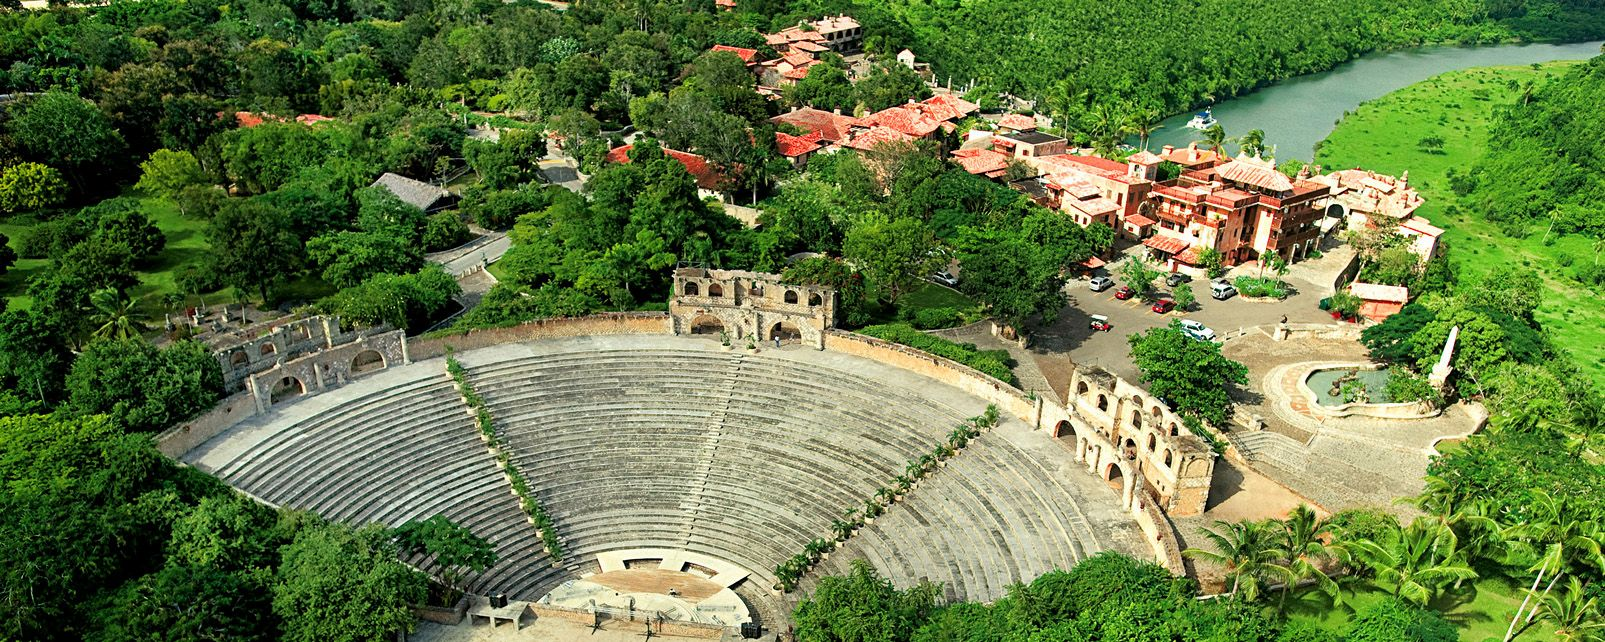 An ancient amphitheatre, Altos de Chavon, Monuments and walks, Dominican Republic